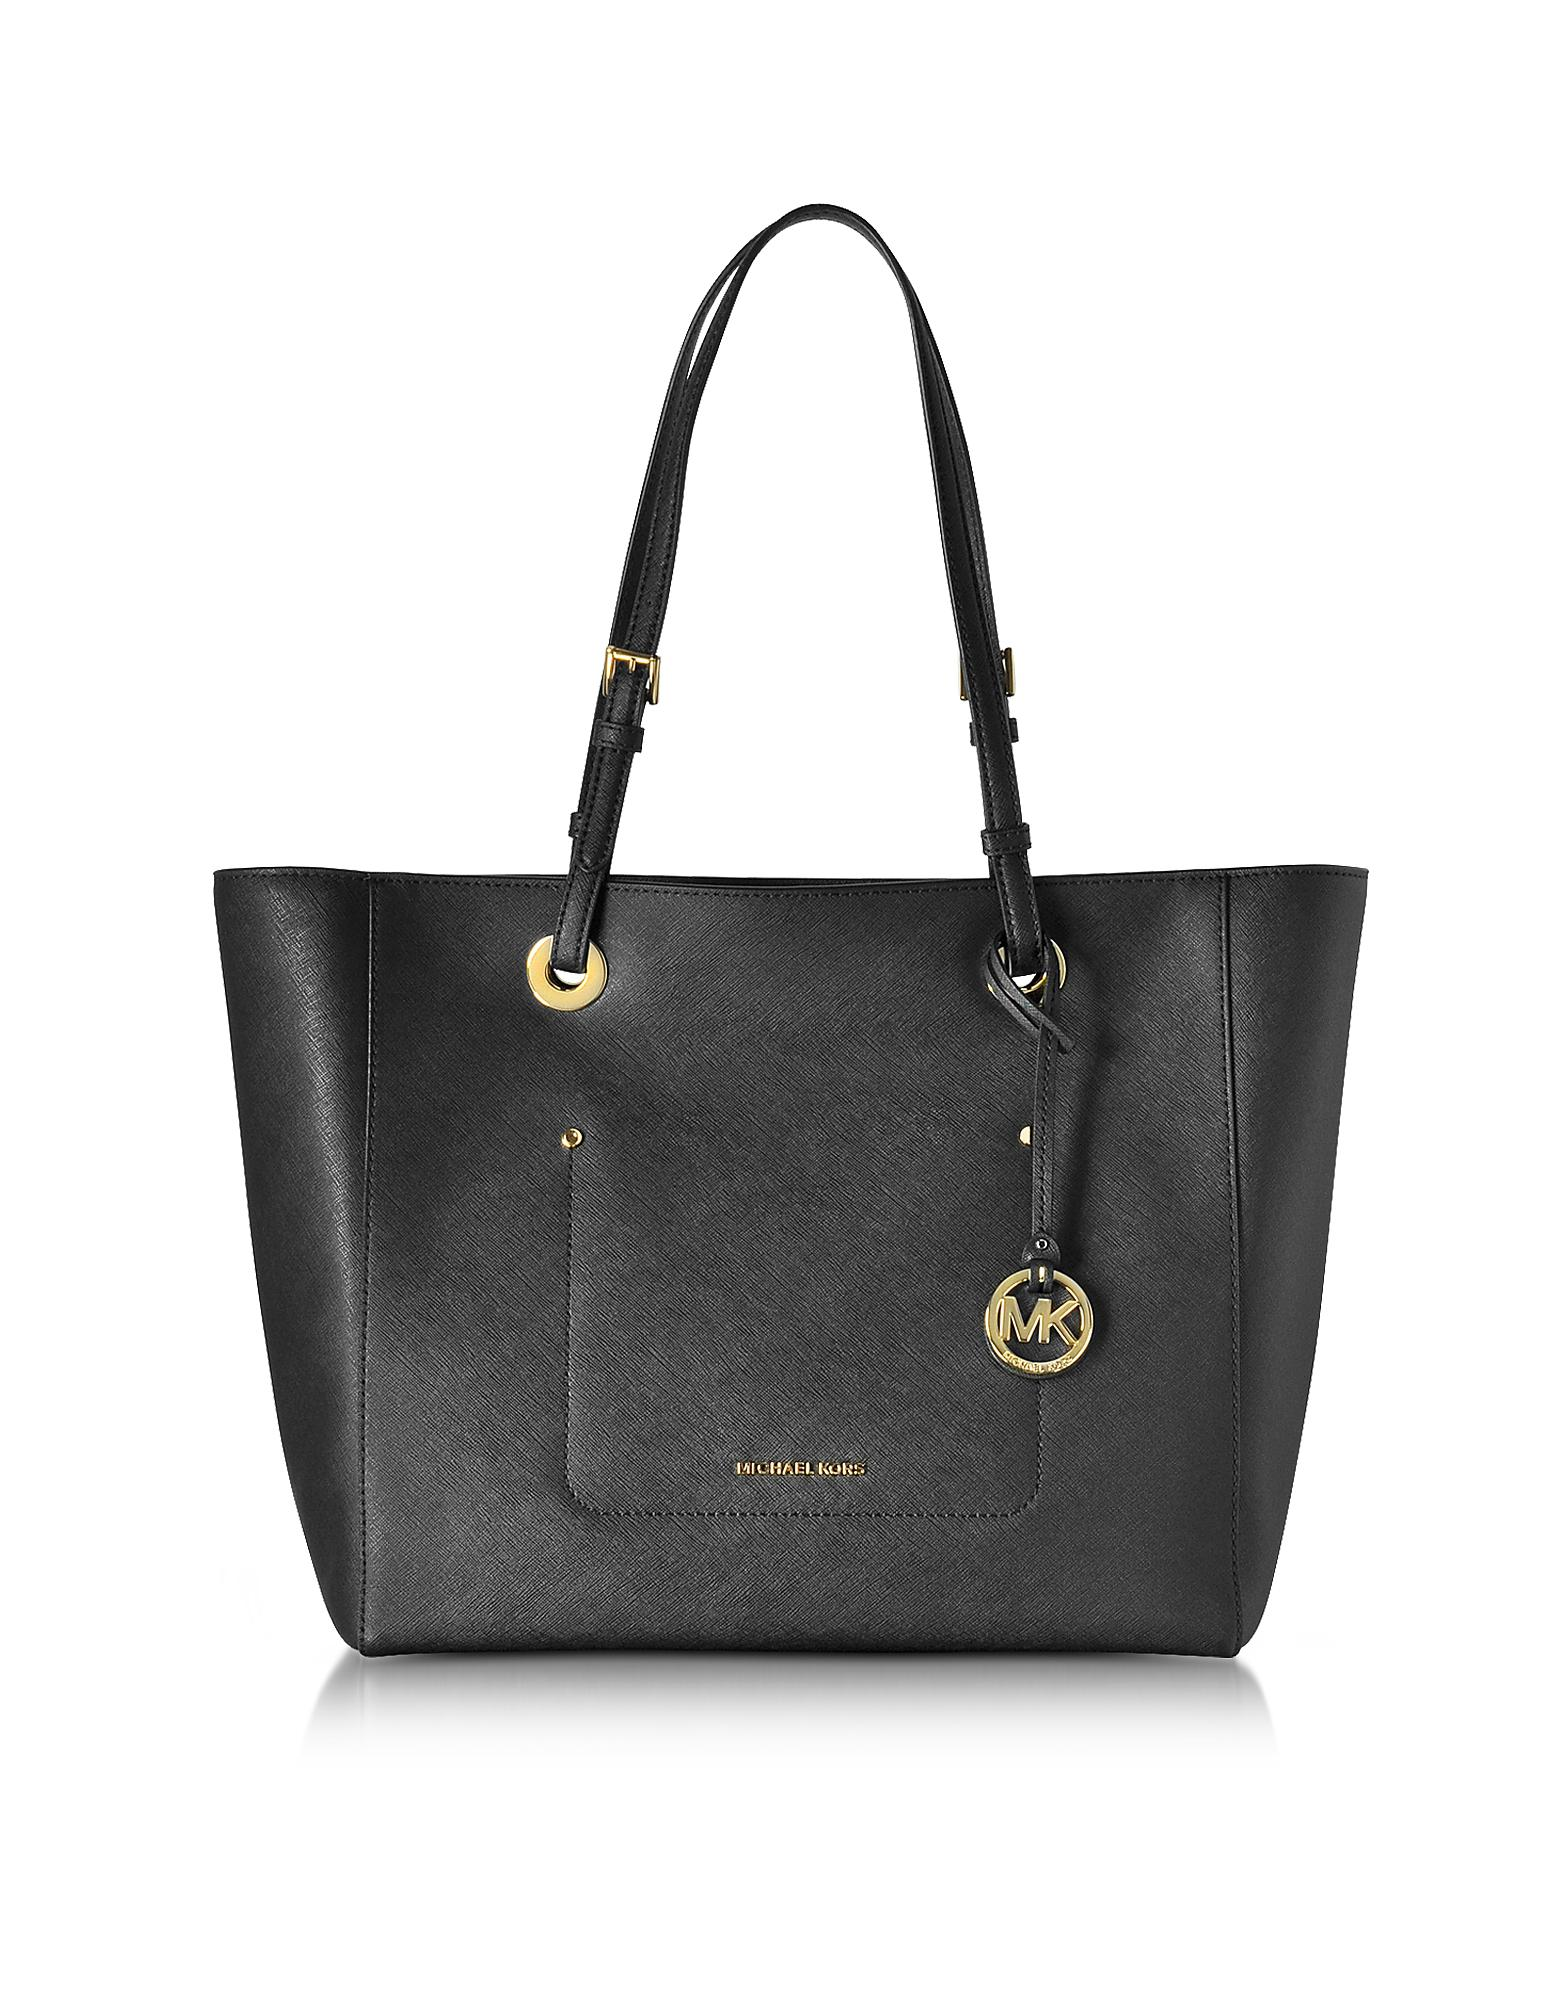 8969d4cb1b08 Michael Kors Walsh Large Black Saffiano Leather Ew Top-zip Tote in ...